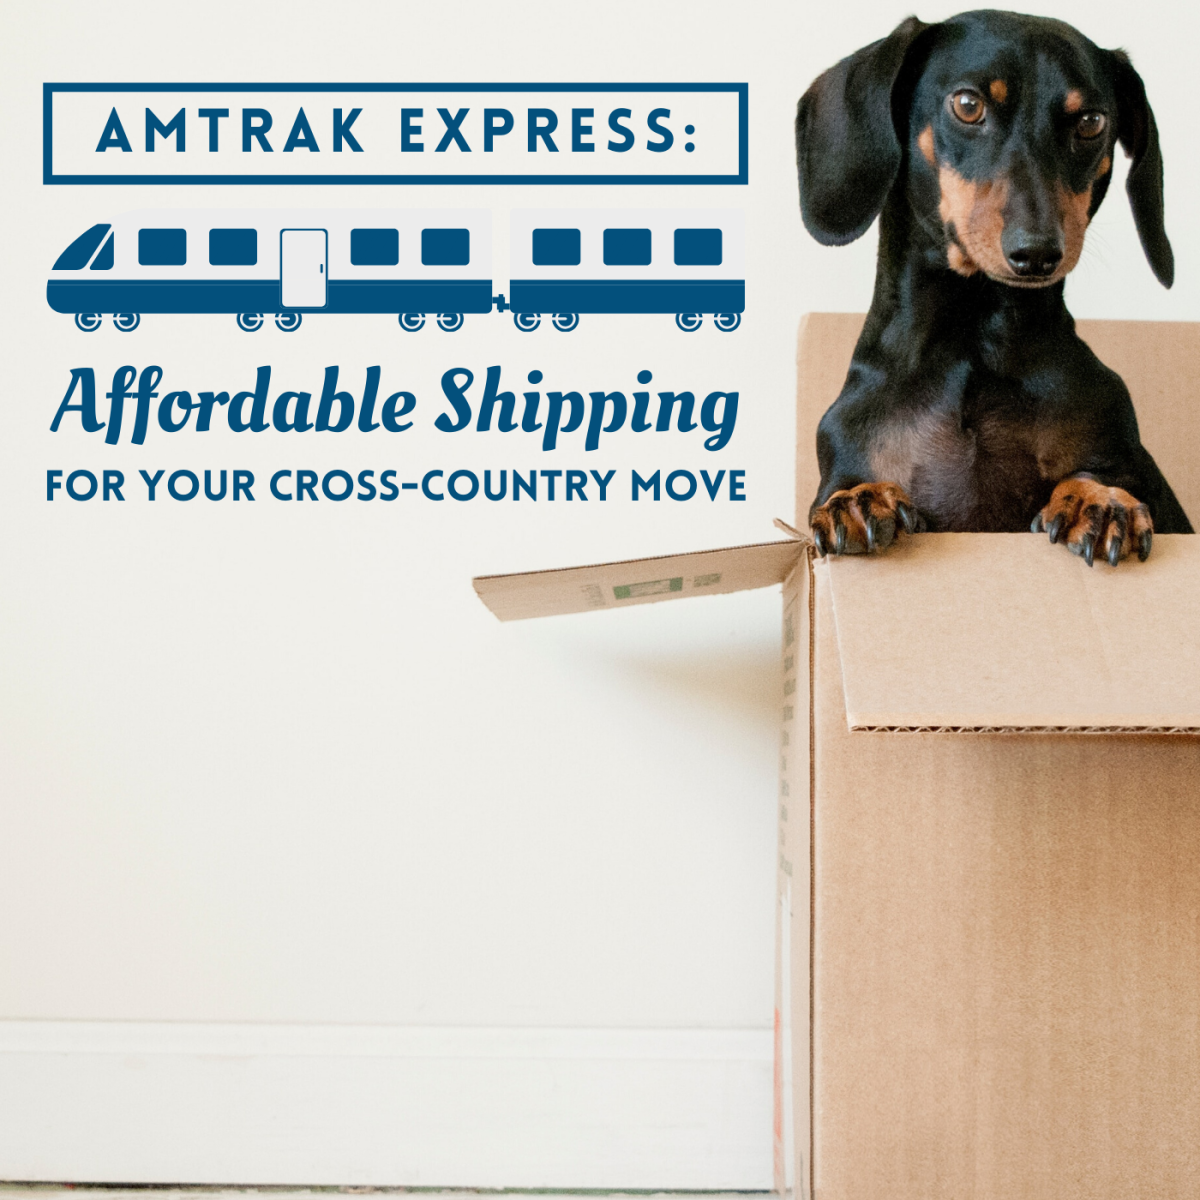 Rental trucks and traditional freight are expensive. Amtrak Express shipping is an affordable alternative.